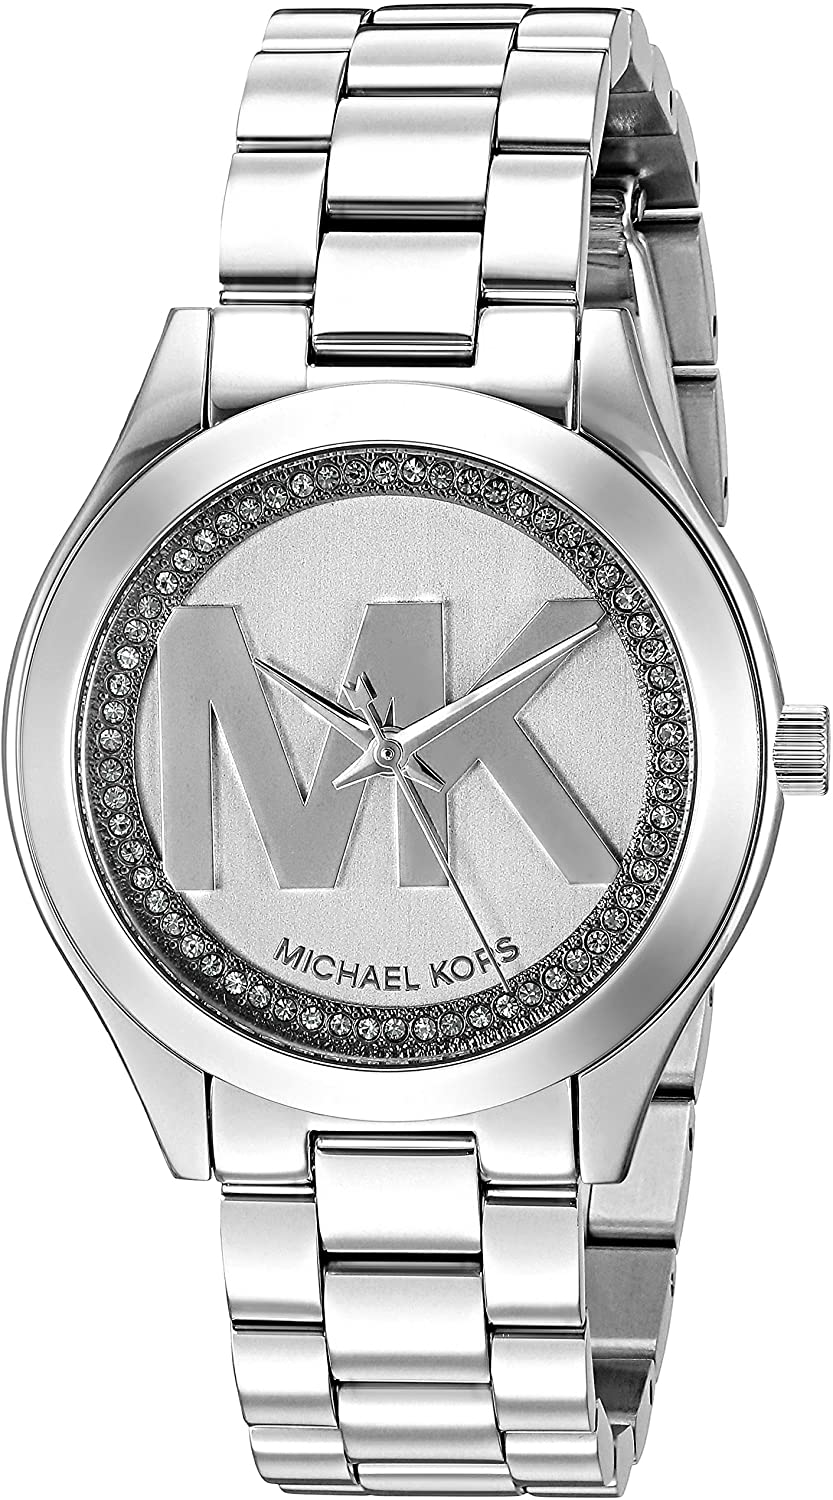 Michael Kors Women's Mini Slim Runway Logo Silver-Tone Watch MK3548